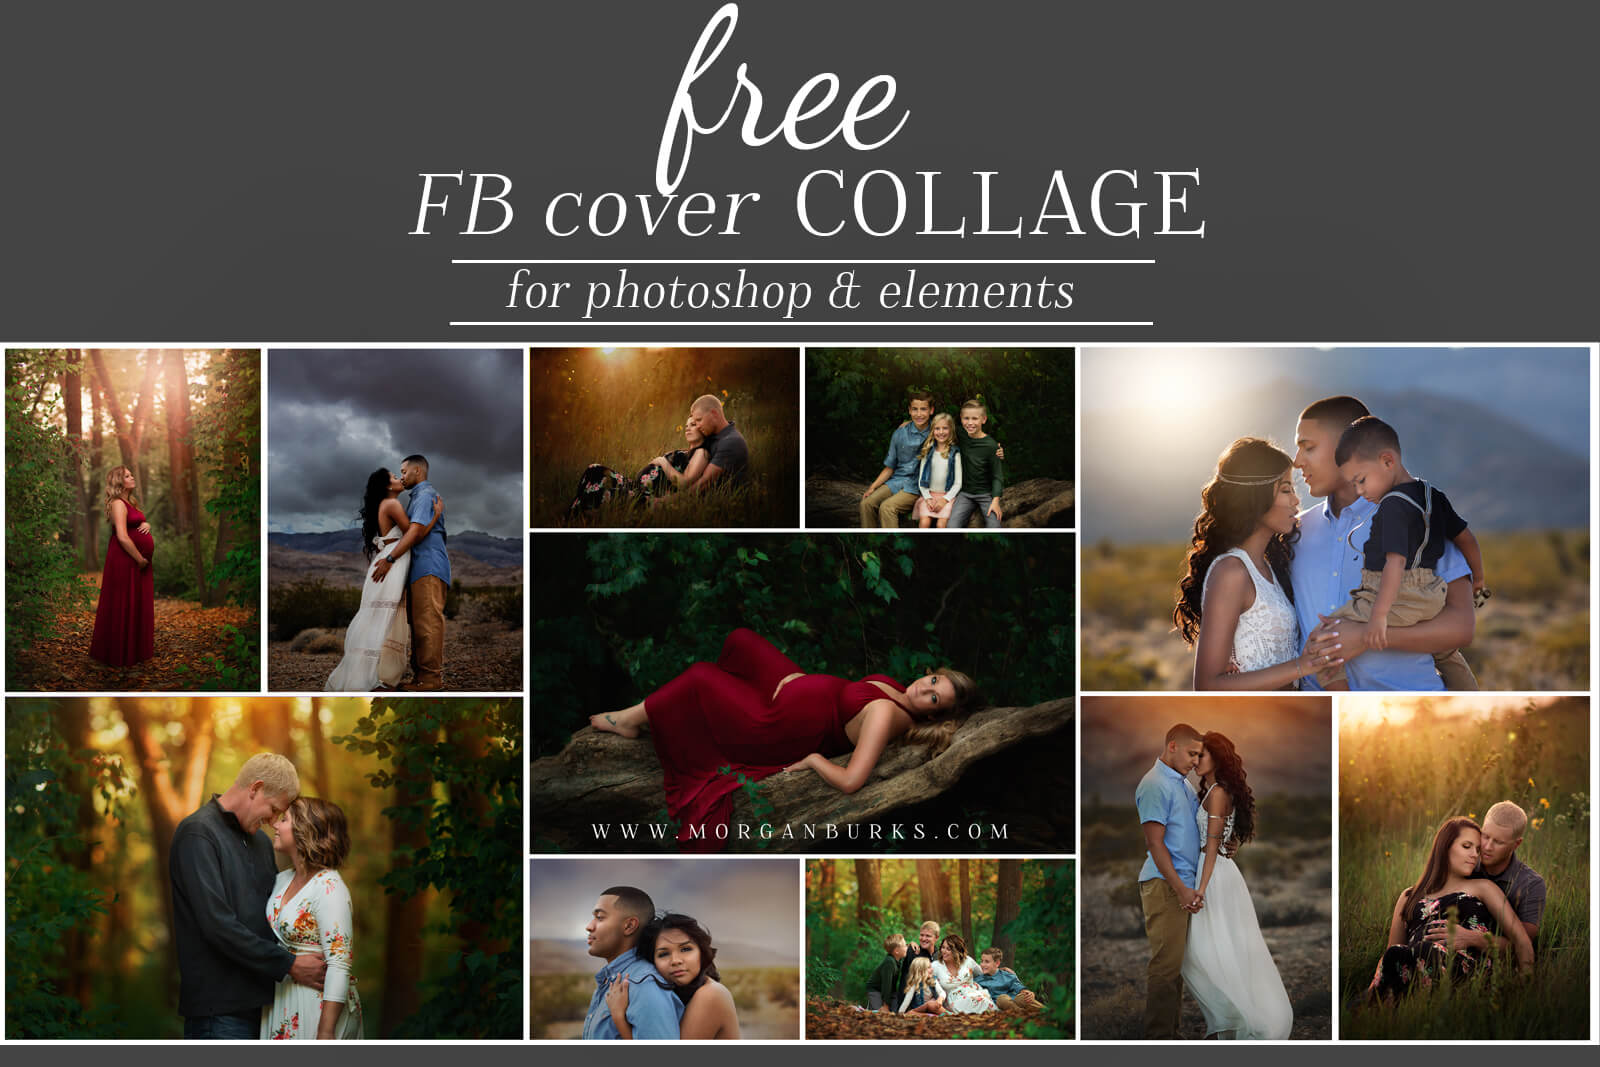 Free Facebook Cover Photo Template For Photoshop  Morgan Burks Throughout Photoshop Facebook Banner Template